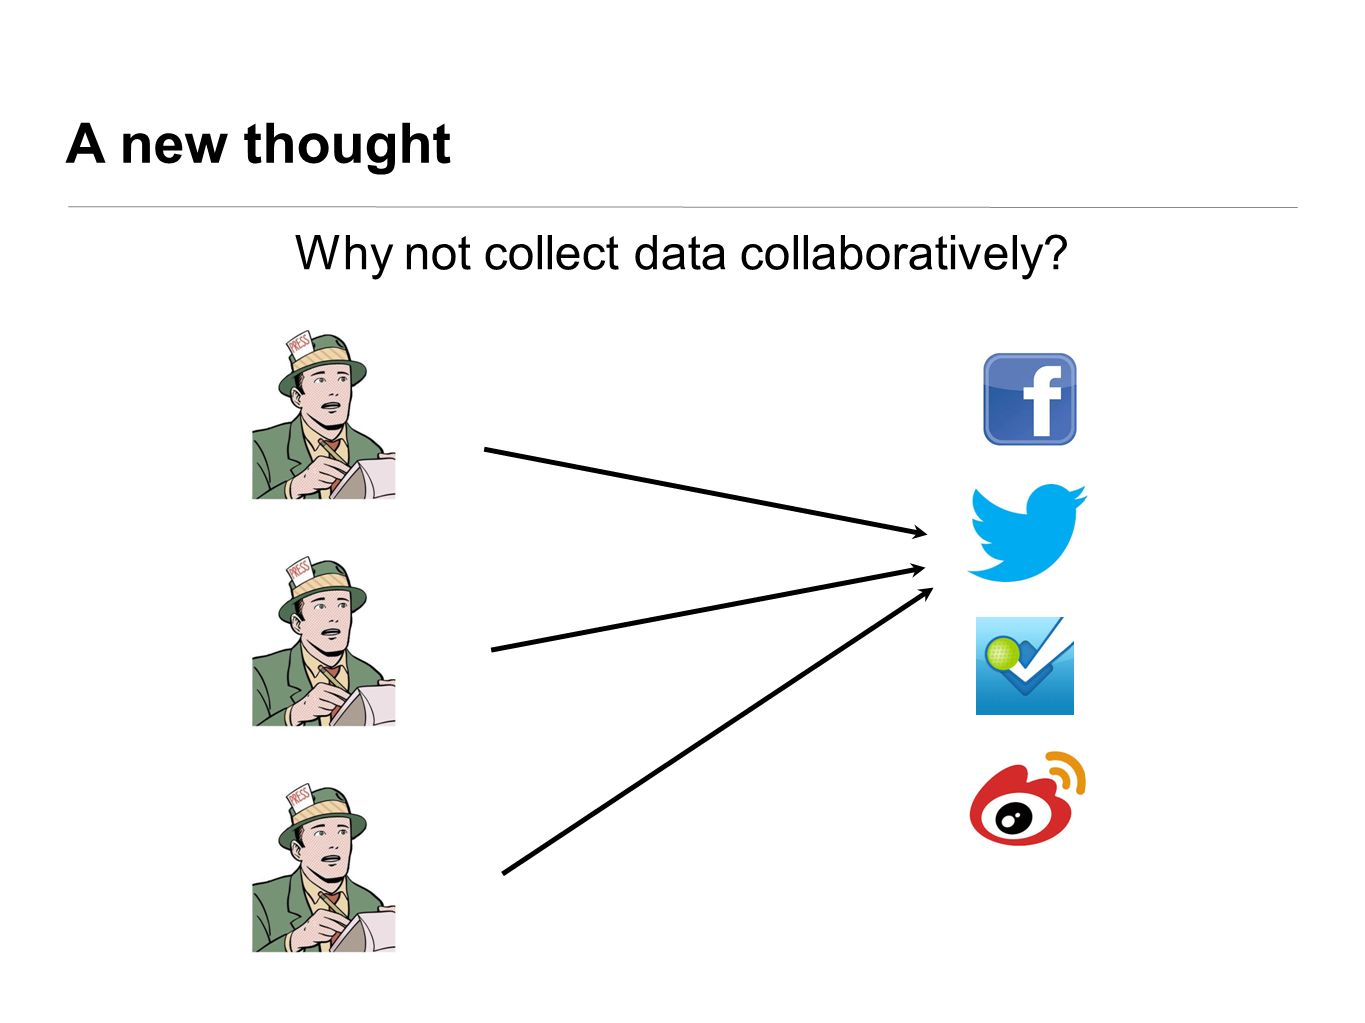 Why not collect data collaboratively